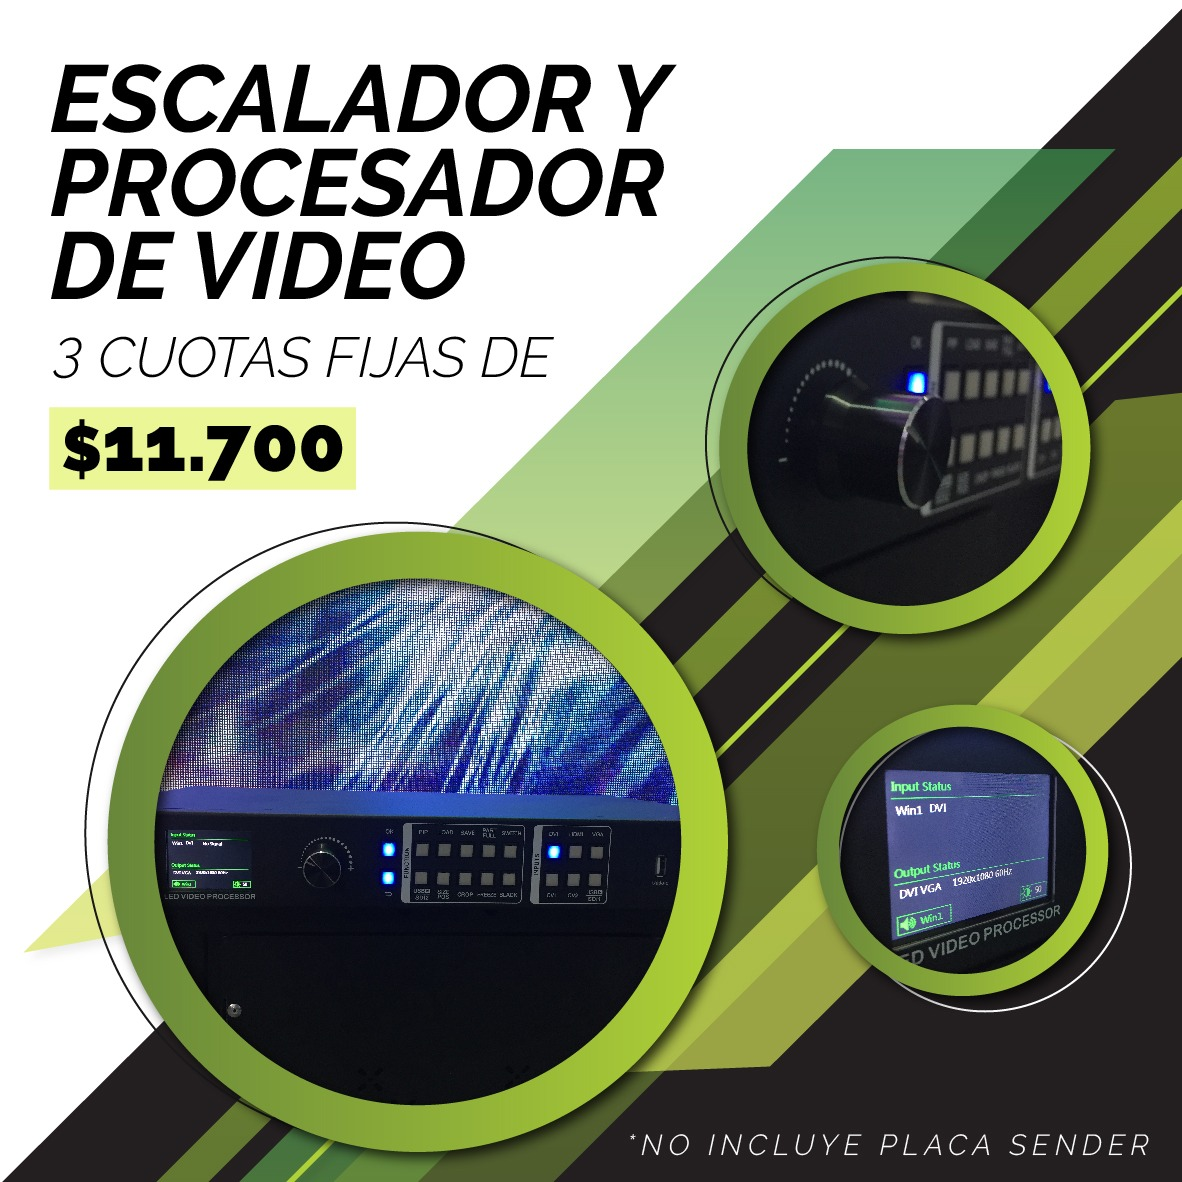 Promo escalador y procesador de video para pantalla LED.